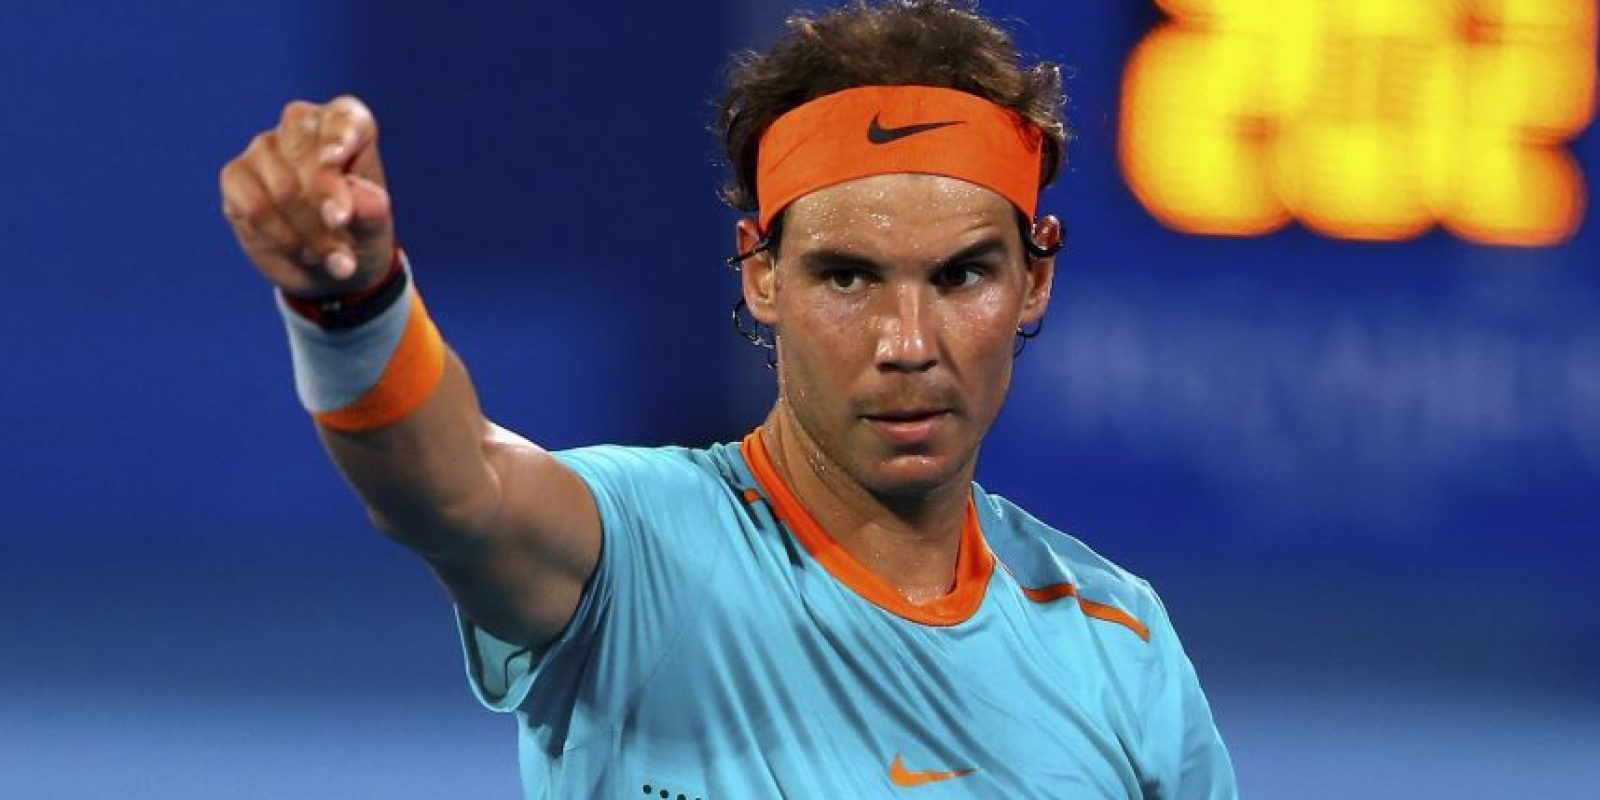 8. Rafael Nadal / Tenis Foto: Getty Images